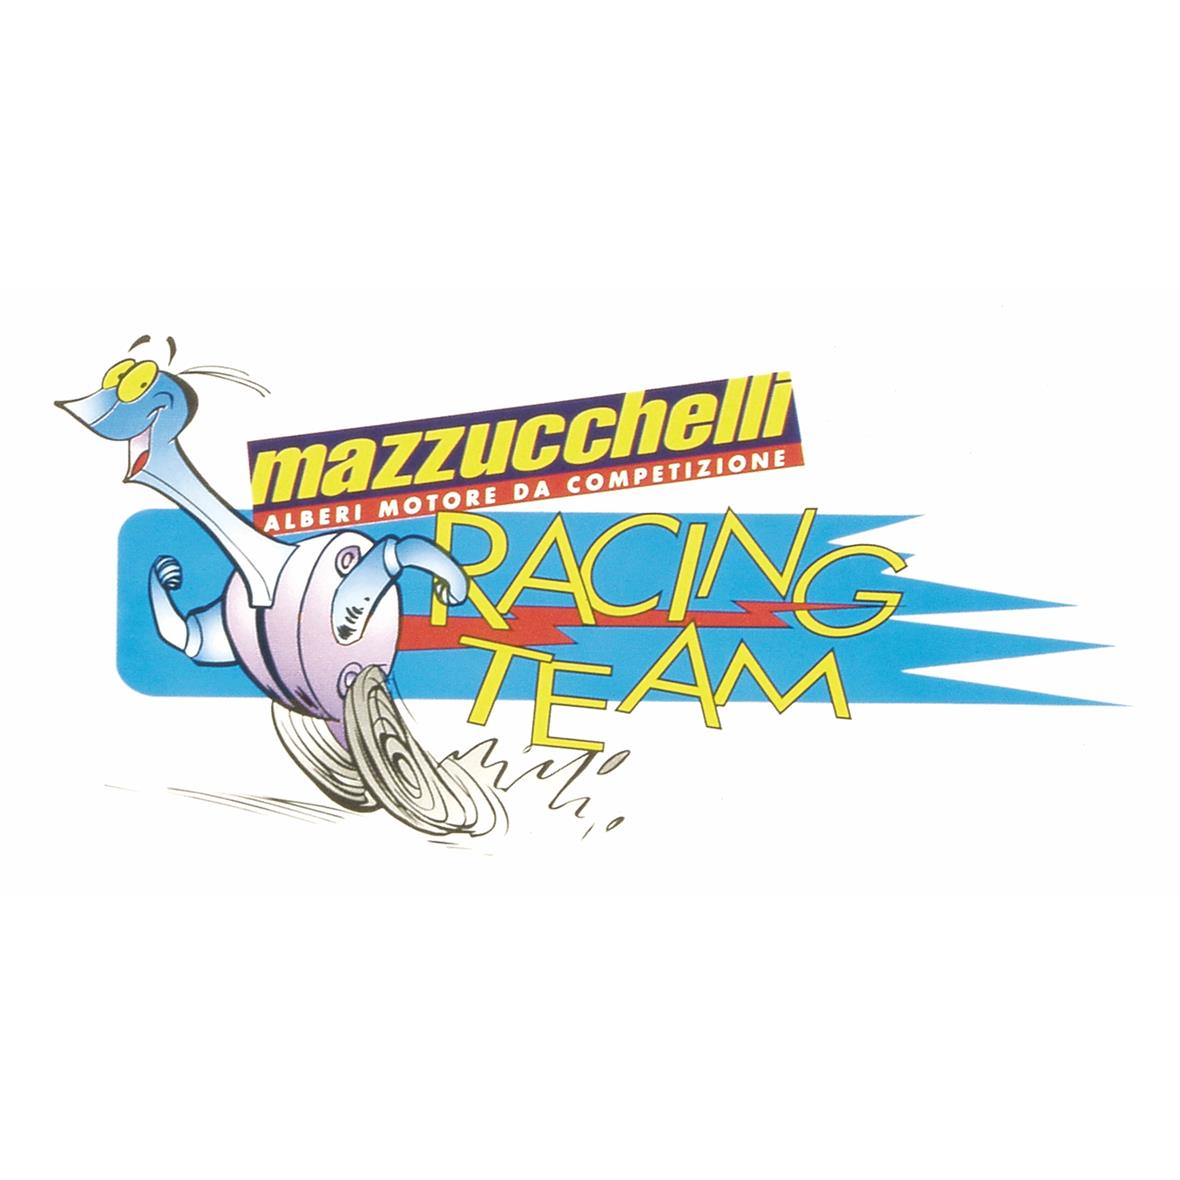 "Imagen del producto para 'Adhesivo MAZZUCCHELLI ""Racing Team""Title'"